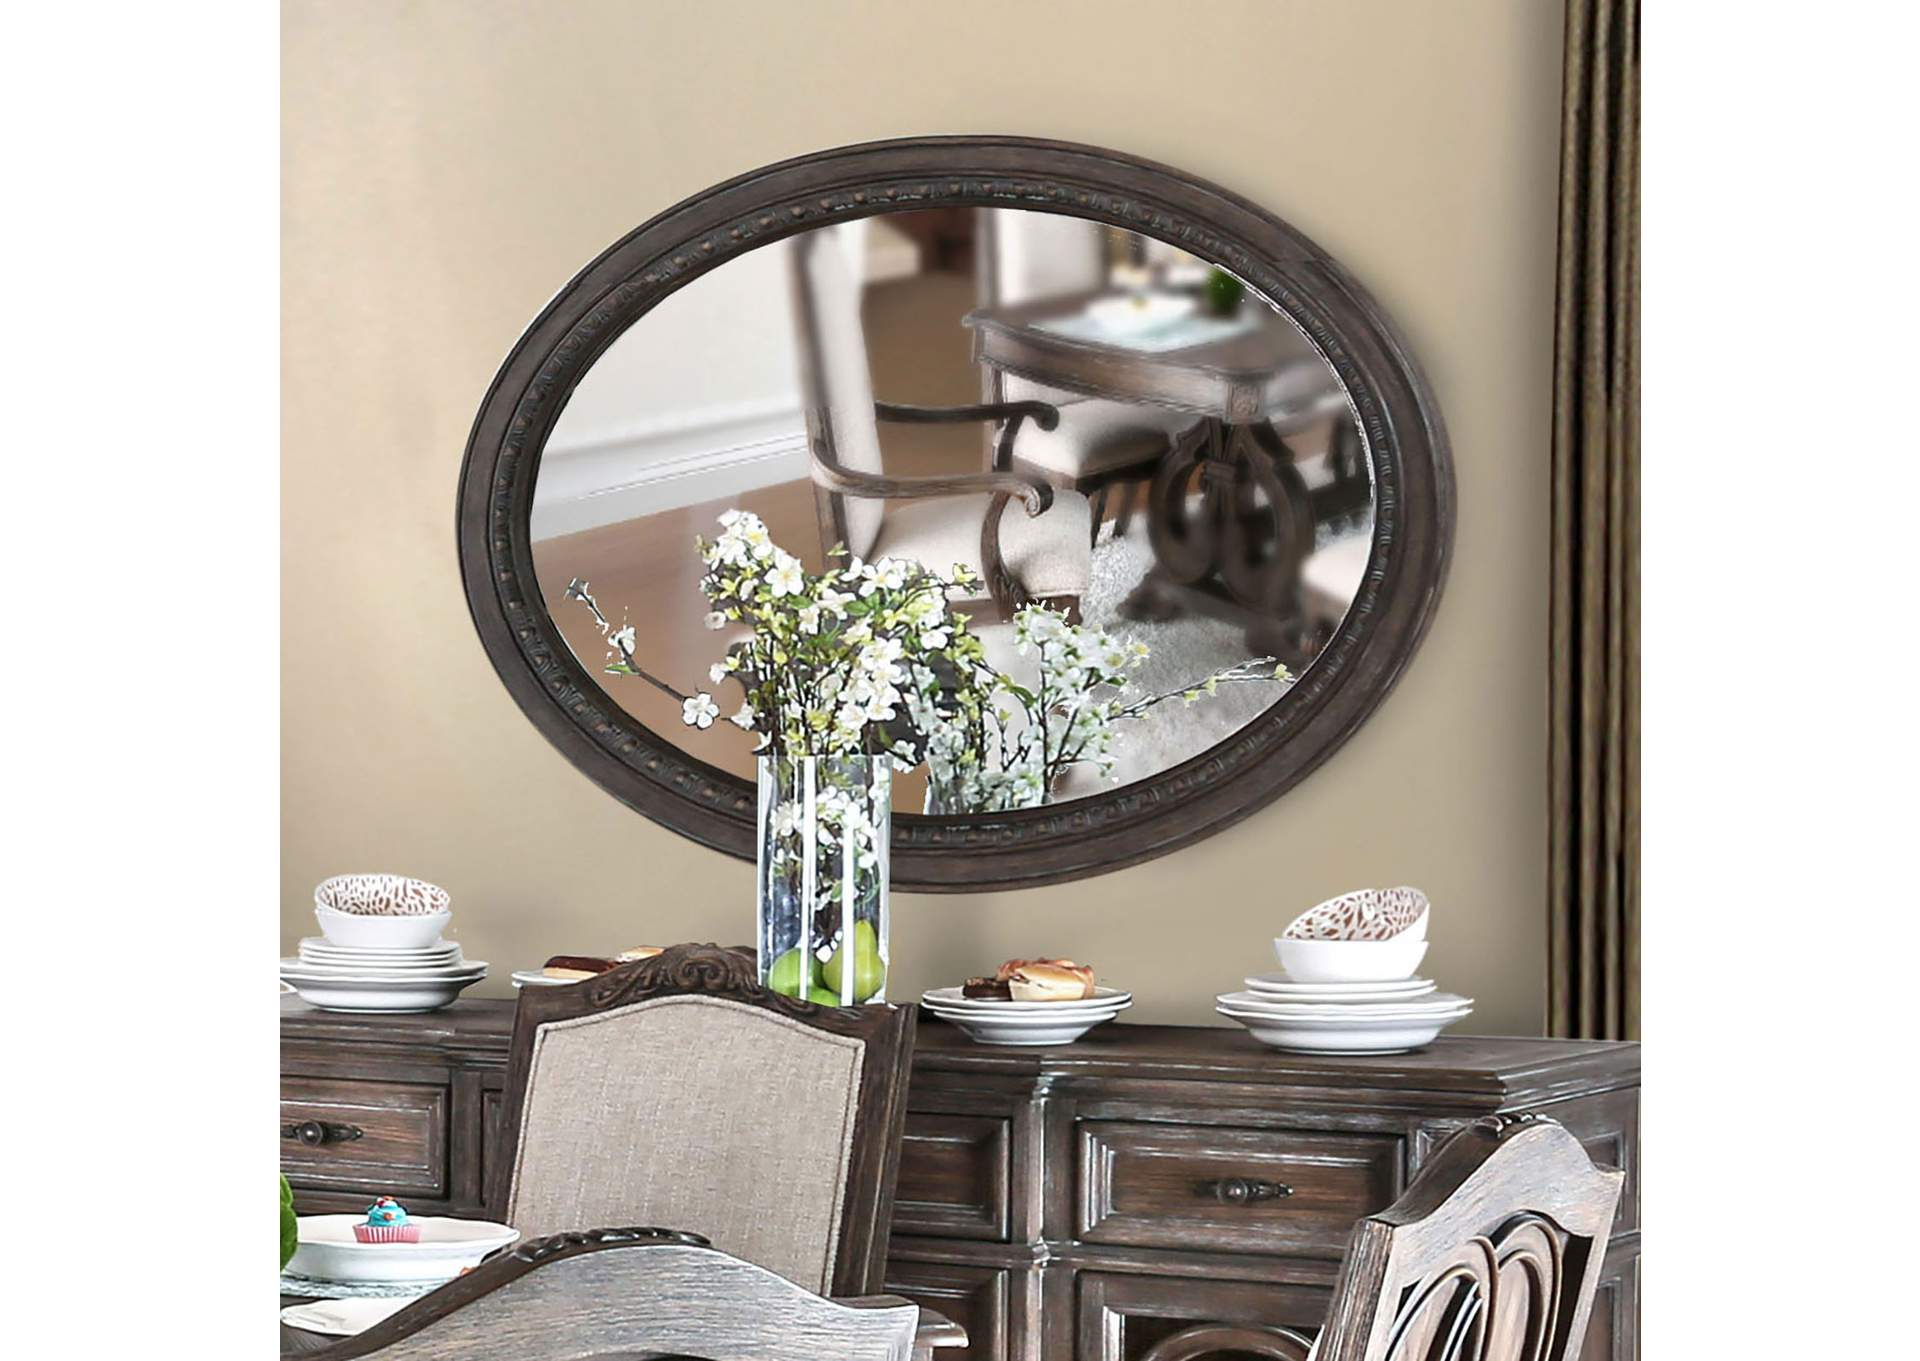 Furniture Ville Bronx Ny Arcadia Rustic Oval Mirror - The-elegance-of-the-arcadia